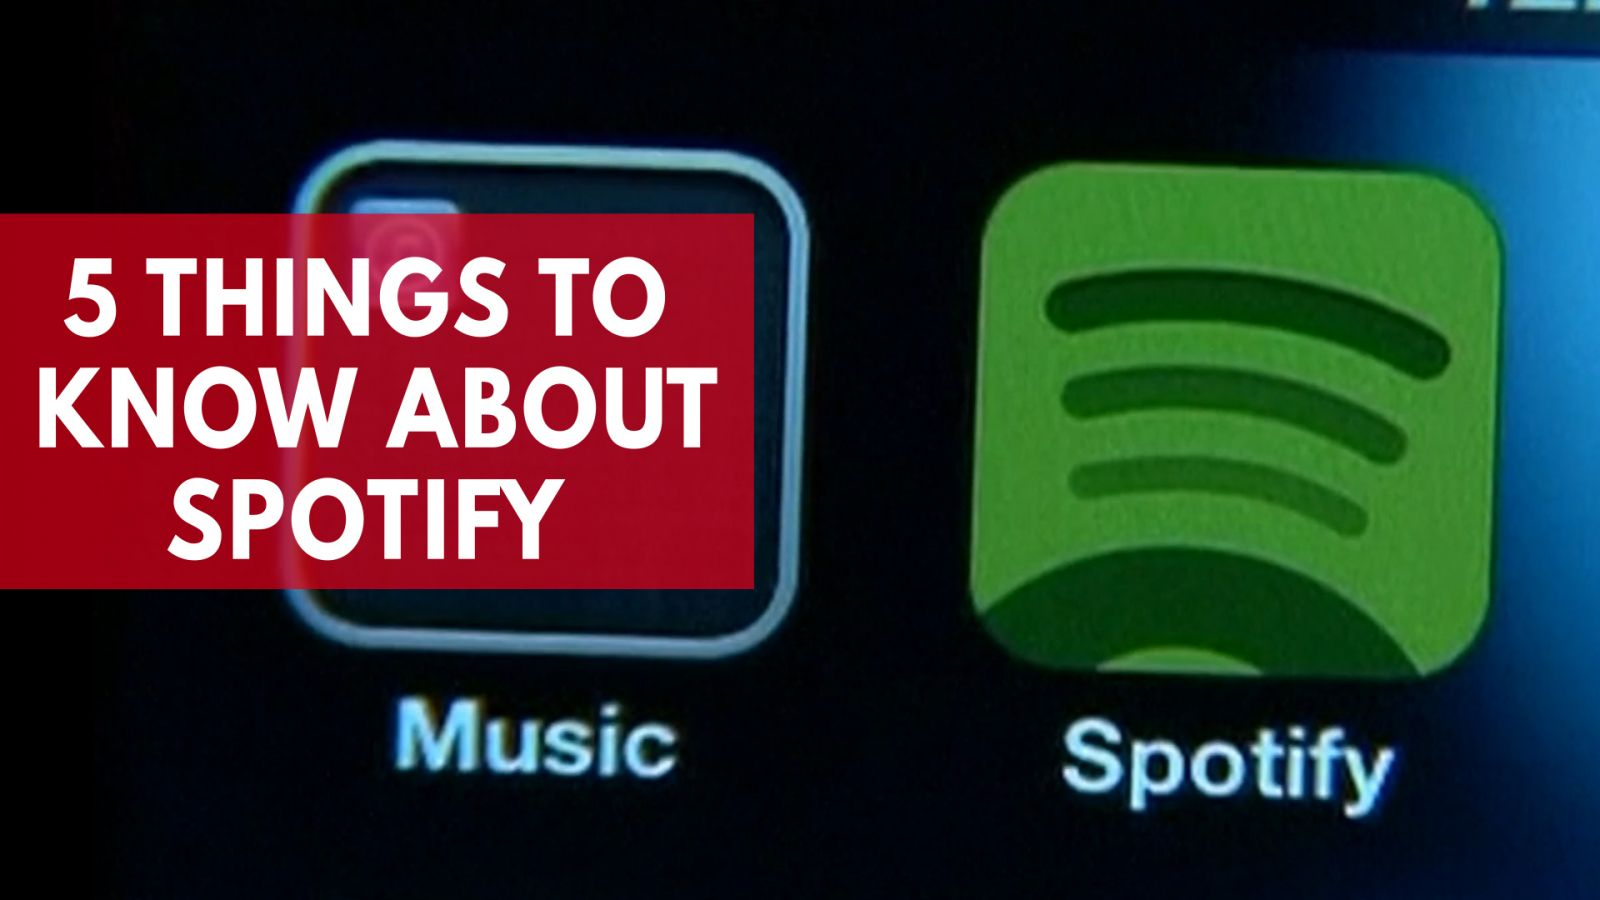 5-things-to-know-about-spotify